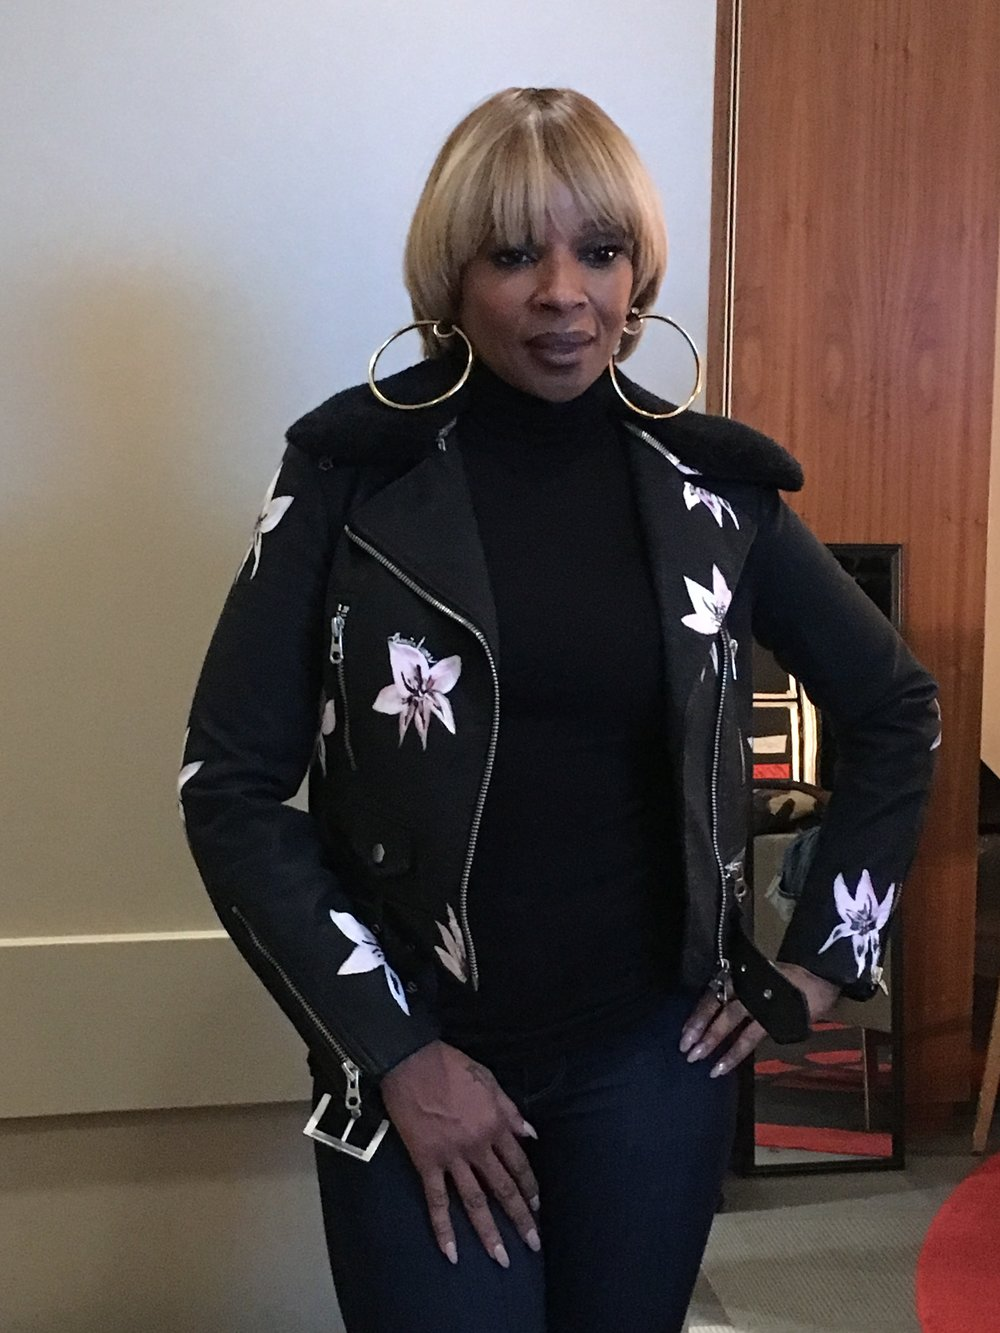 Mary J Blige   Legendary Grammy Award Winning Singer and Actress, Mary J Blige is spotted wearing her custom CA Handpainted Signature Floral Motorcyle Jacket during her most recent King & Queens tour.